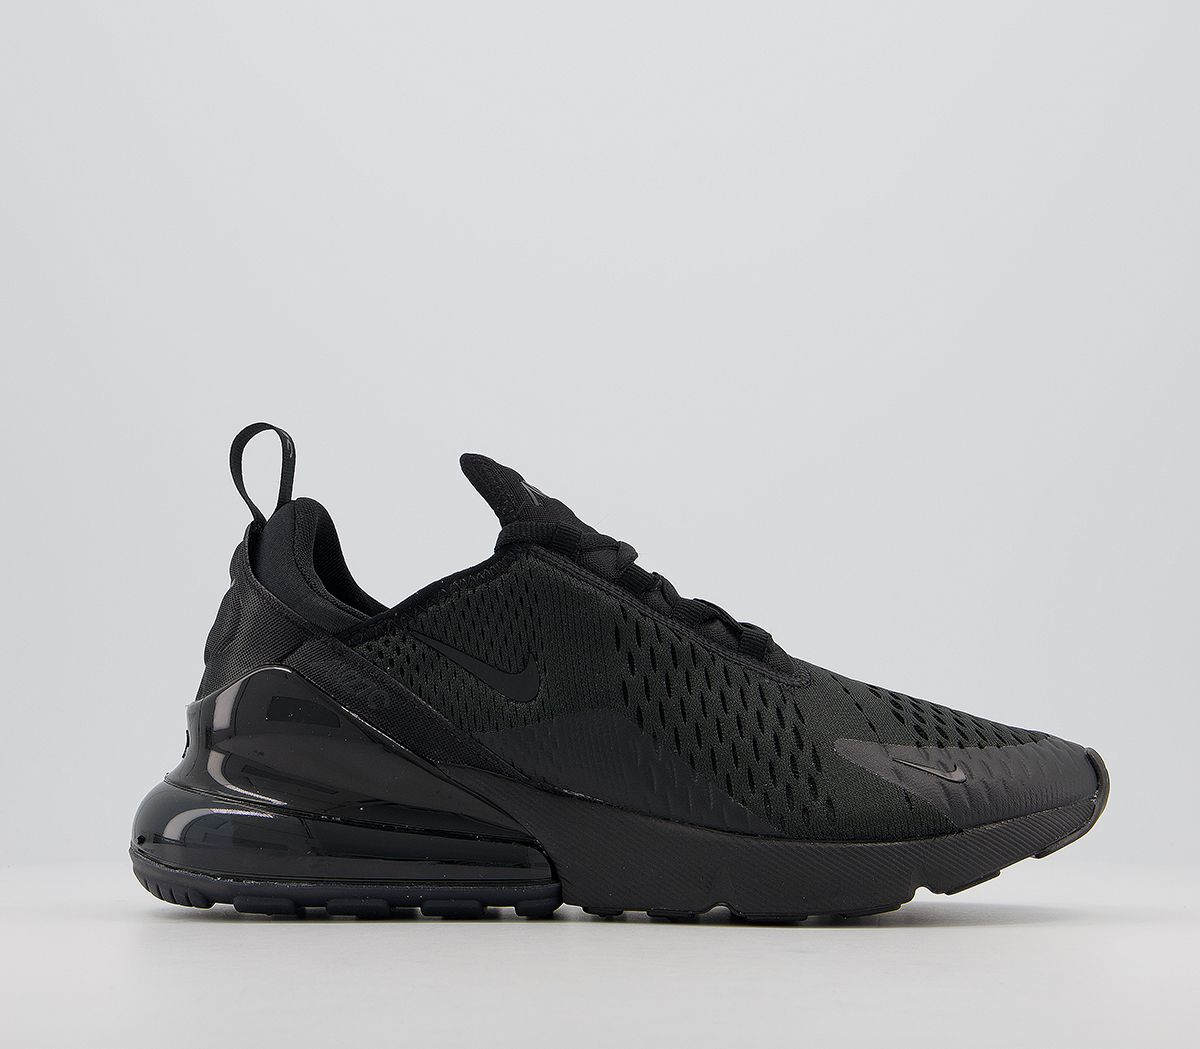 5d8c6d2f08 Nike Air Max 270 Trainers Black - His trainers